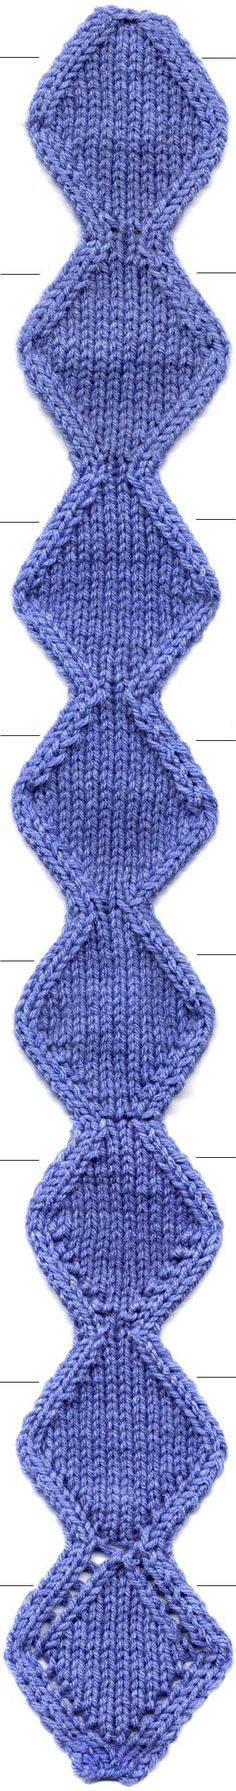 Knitting Increase Stitches : Images about knitting decrease increase on pinterest